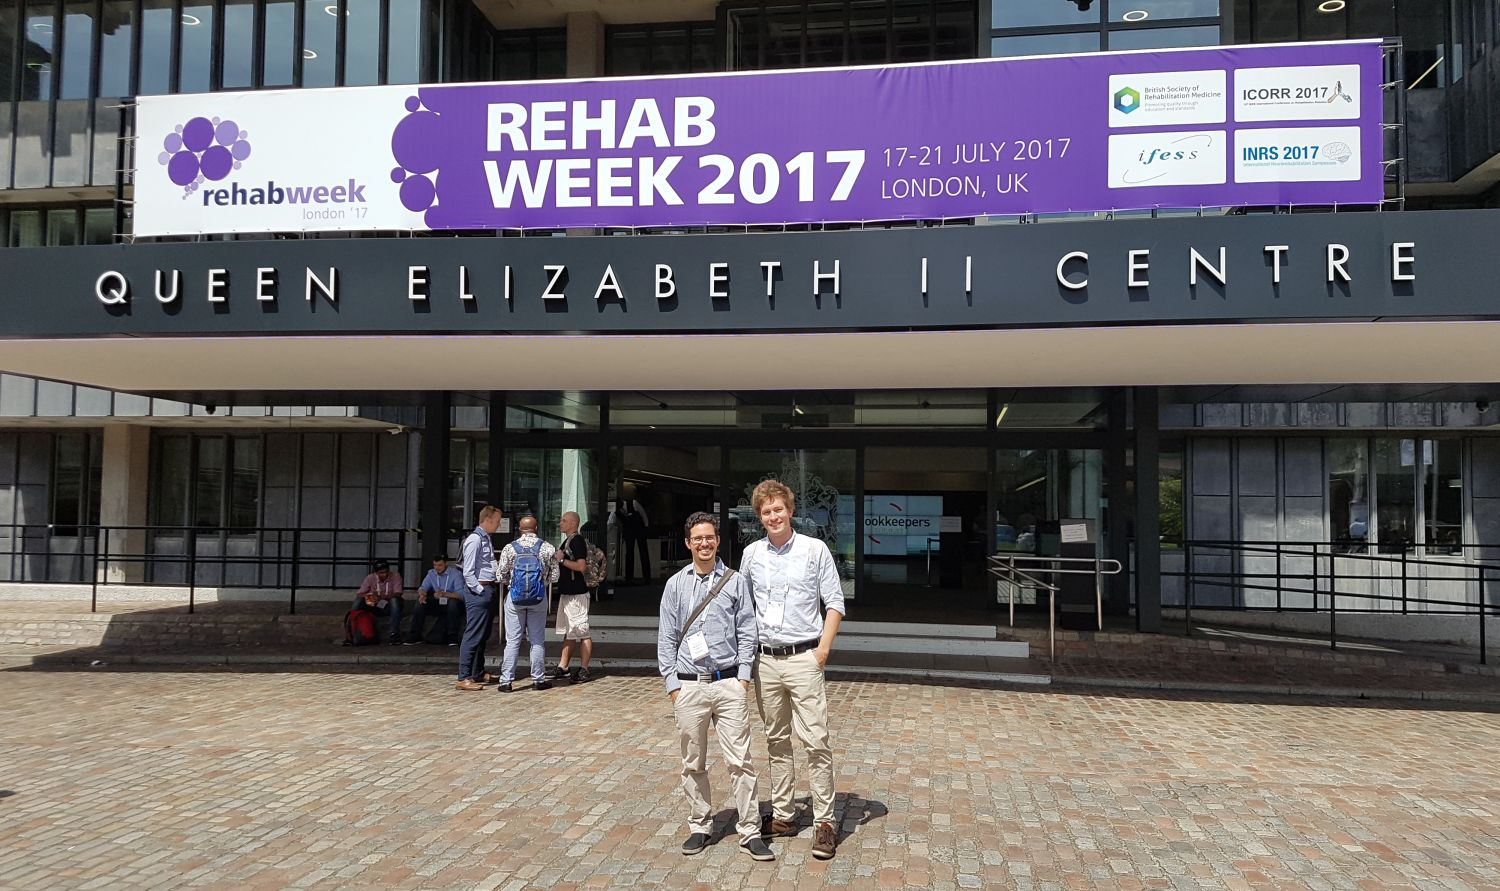 Alex and Valentin at Rehab Week 2017